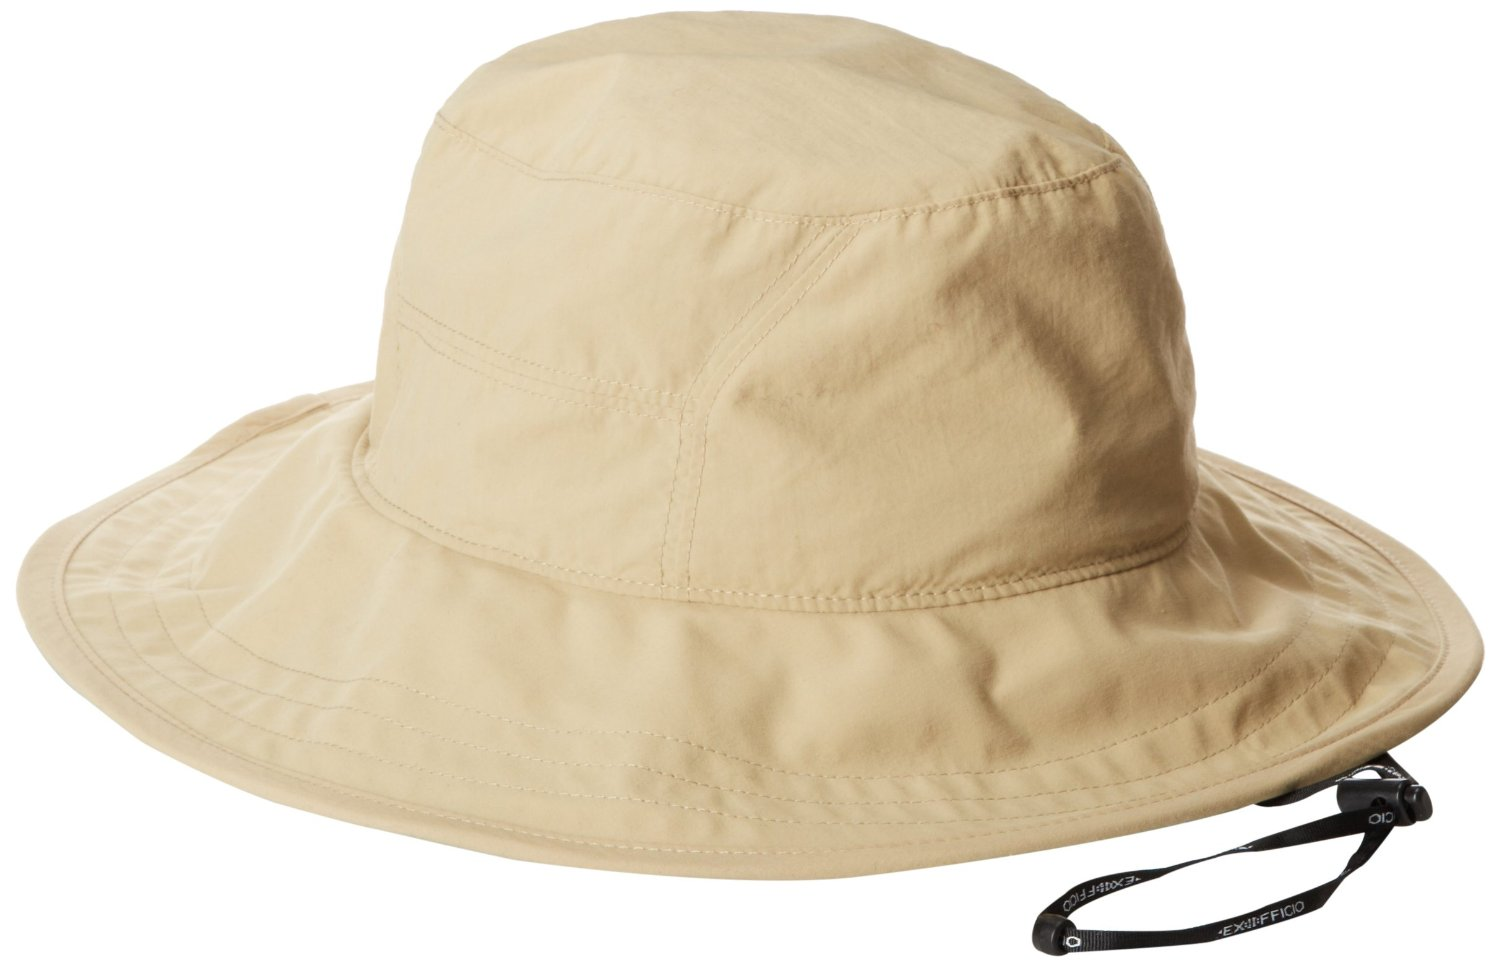 mosquito-repellent-clothing-hat